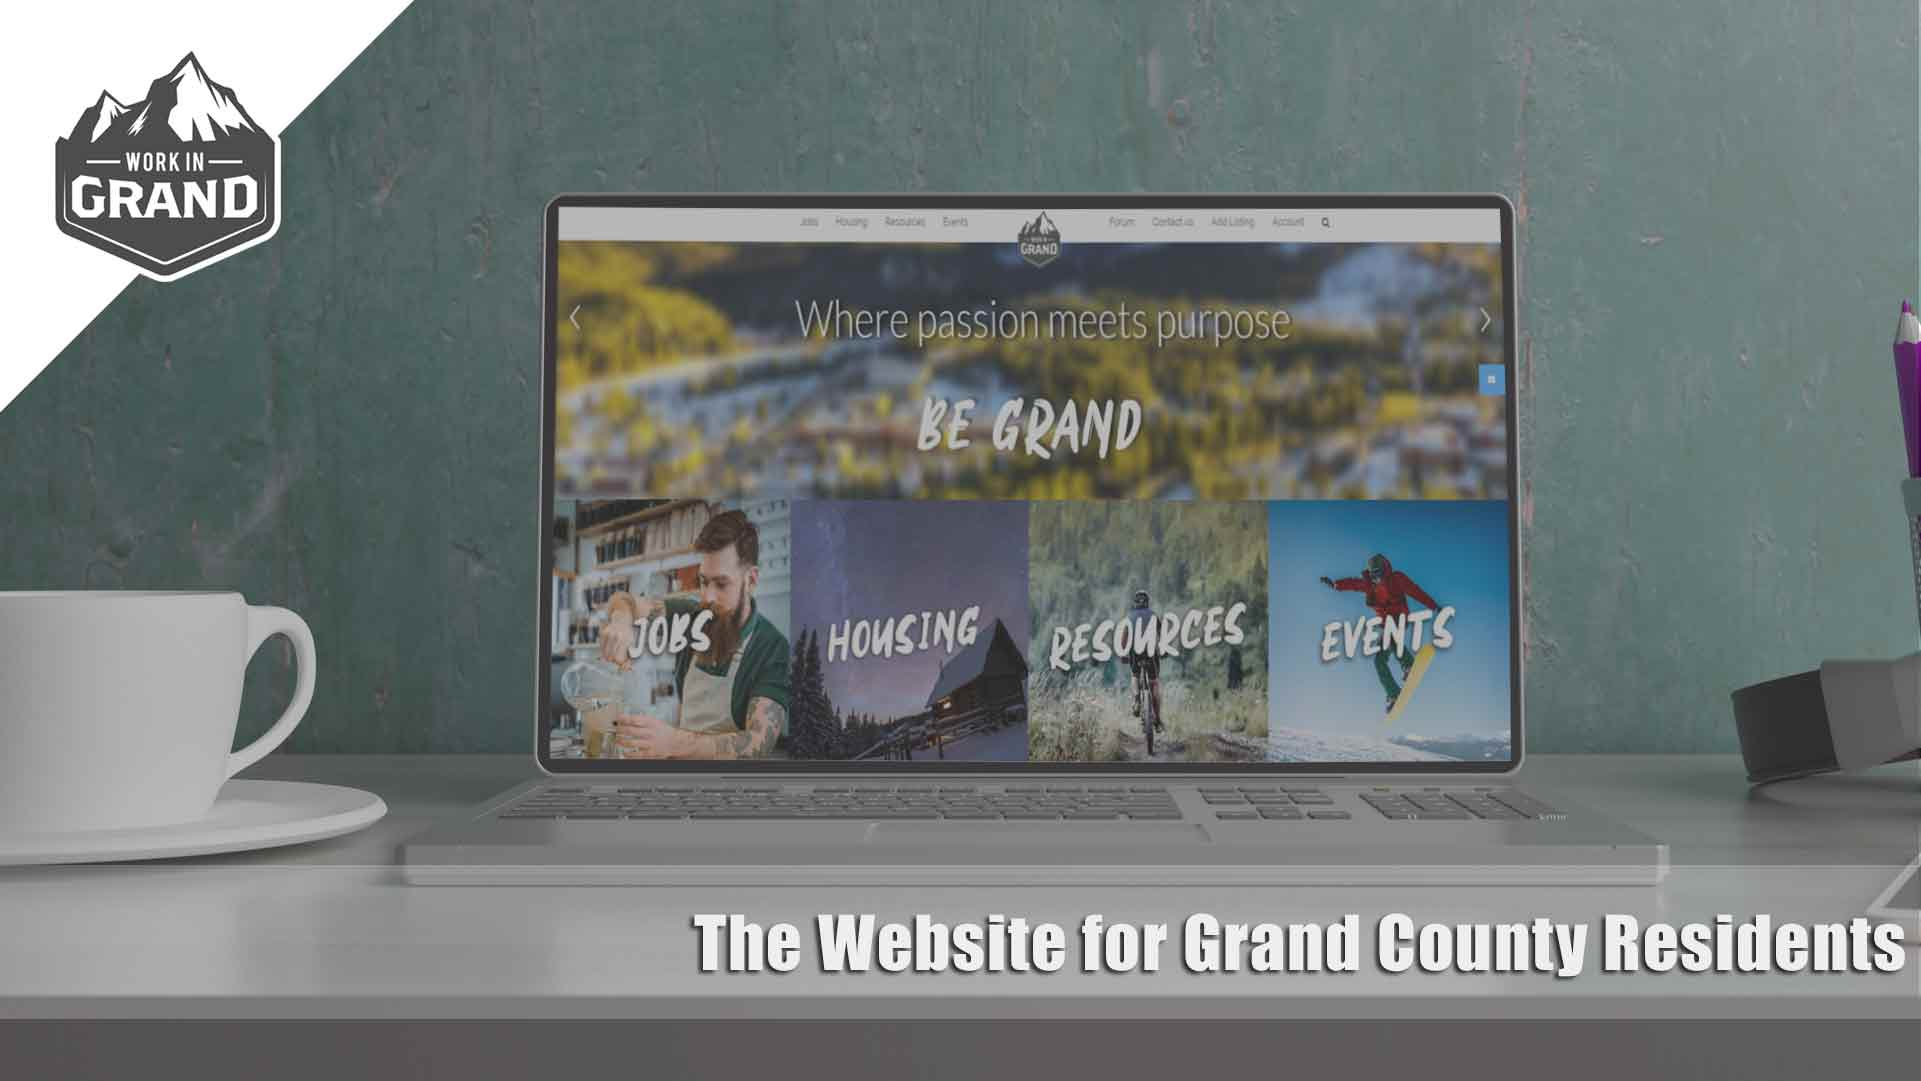 WorkInGrand - The Website for Grand County Residents